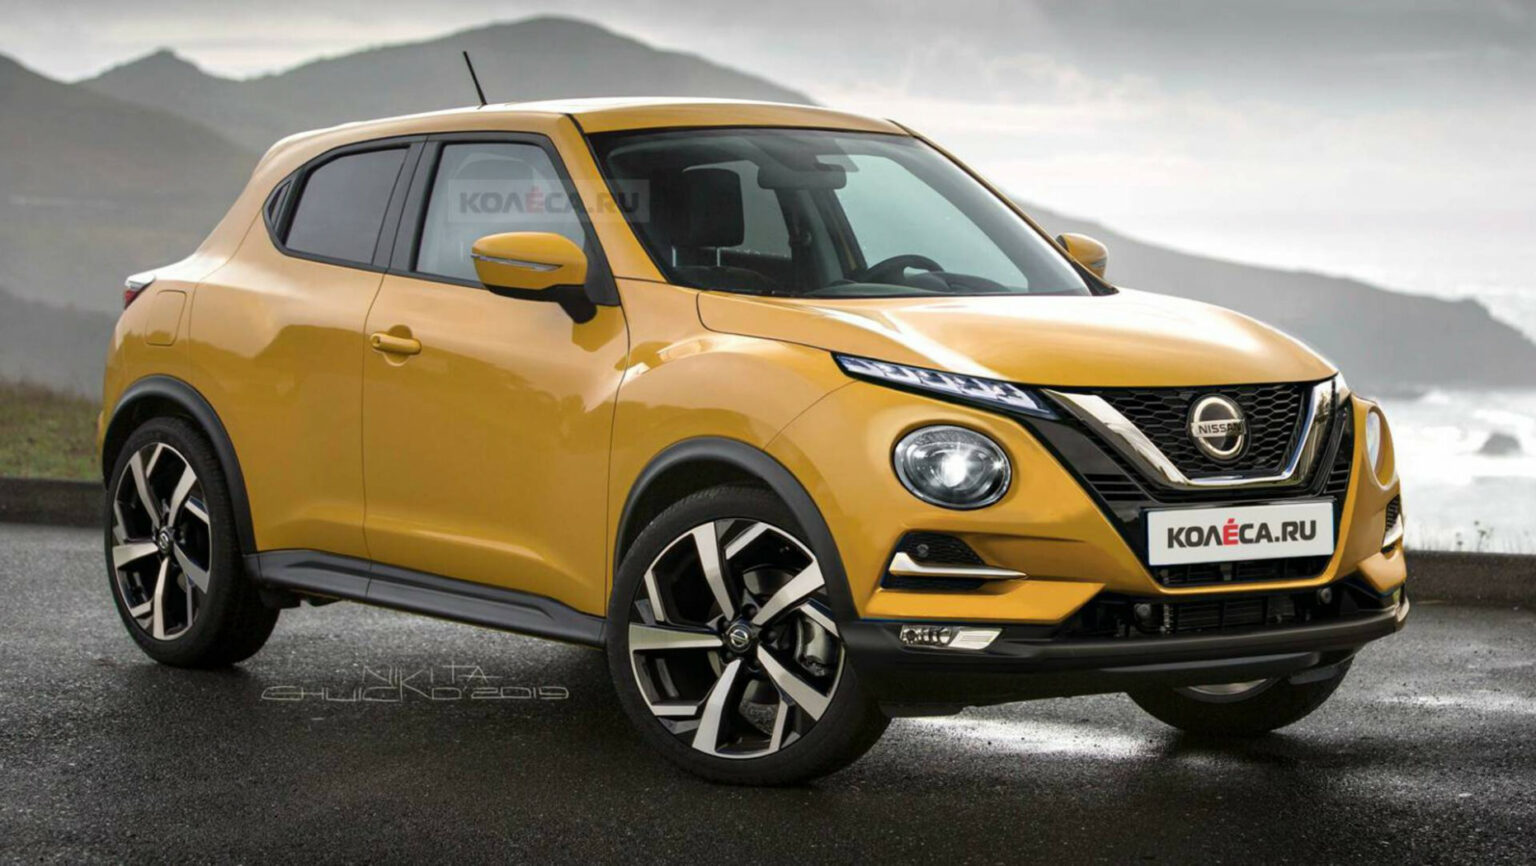 photos 2022 nissan juke - cars review : cars review